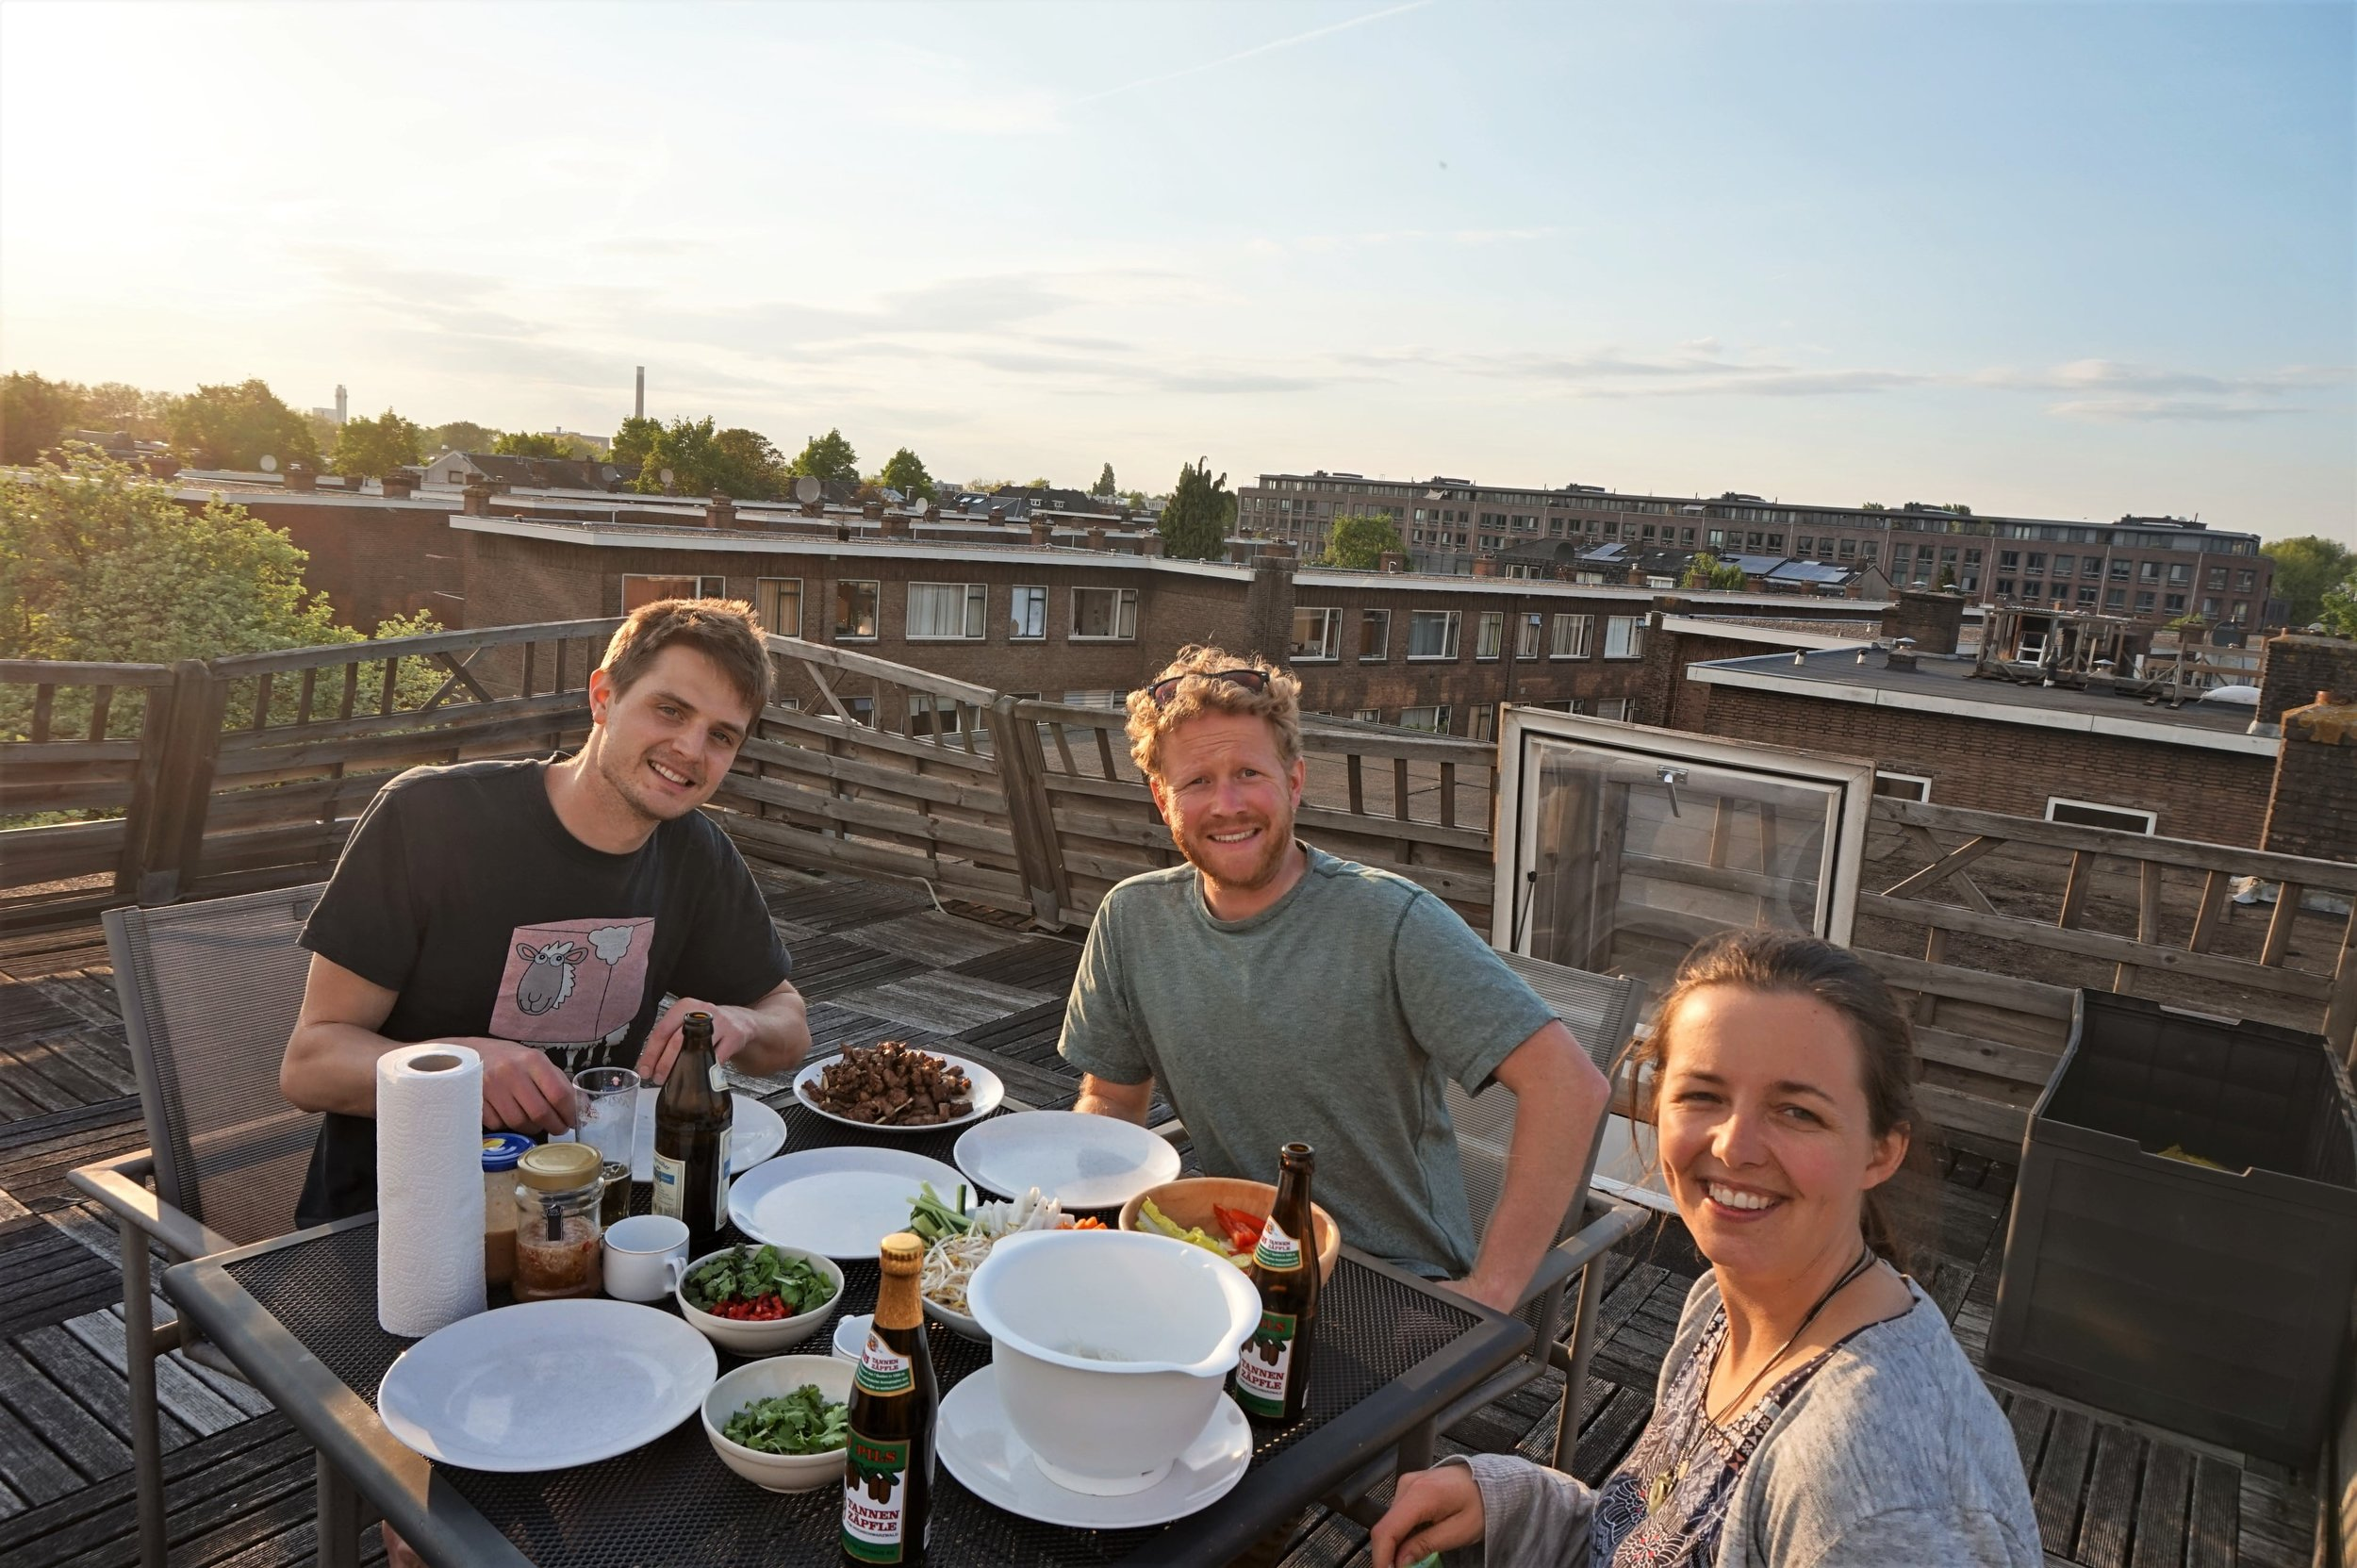 Dinner with friends in the Netherlands